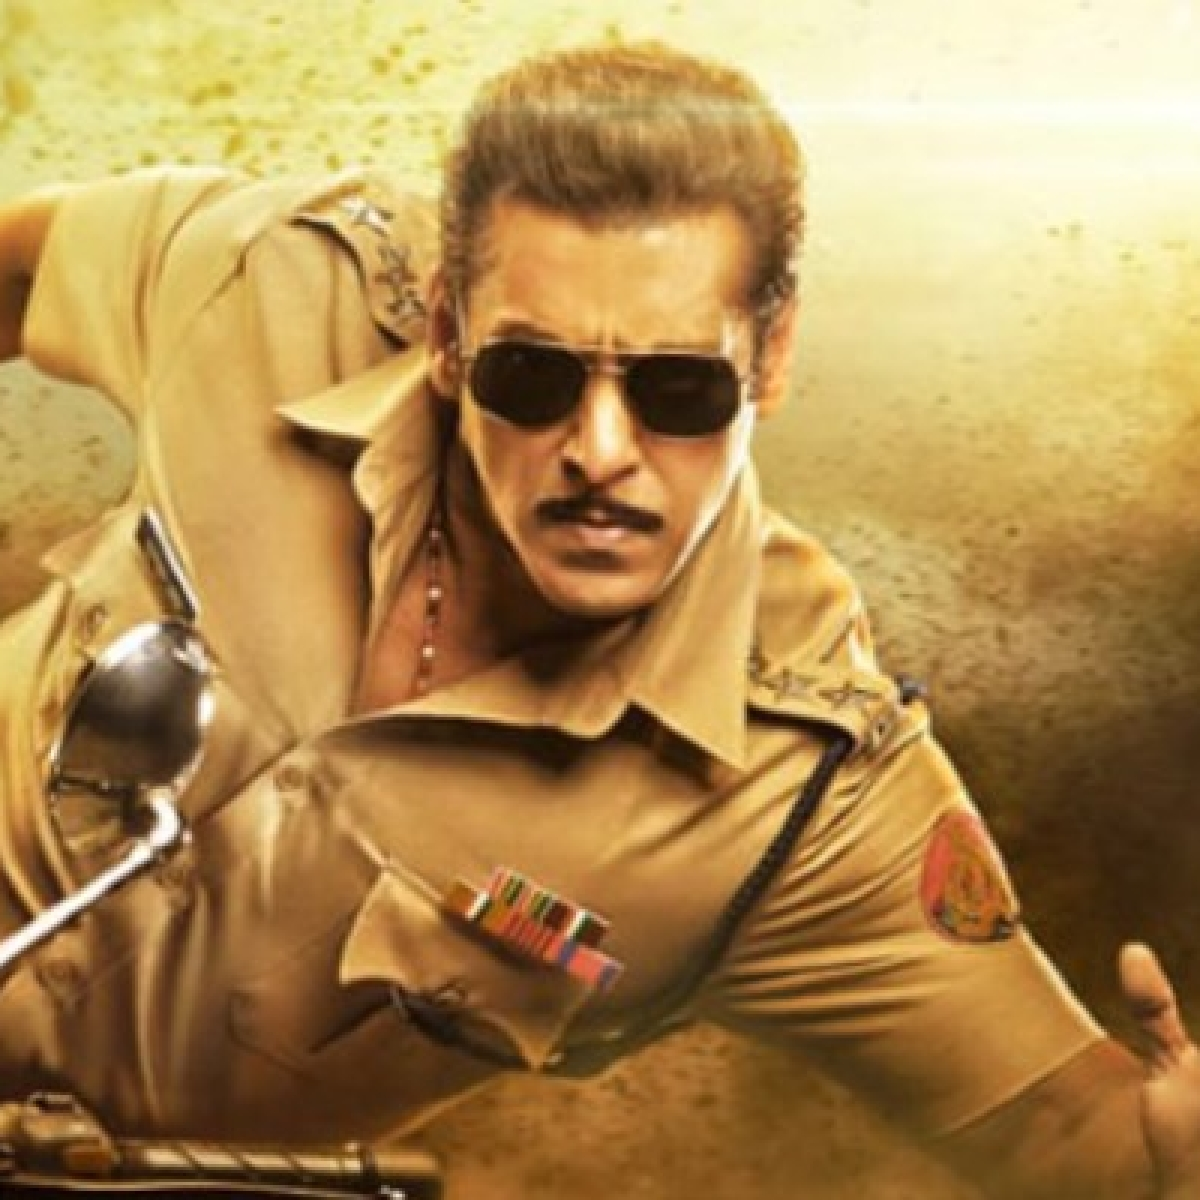 Salman Khan's action franchise 'Dabangg' gets an animated series